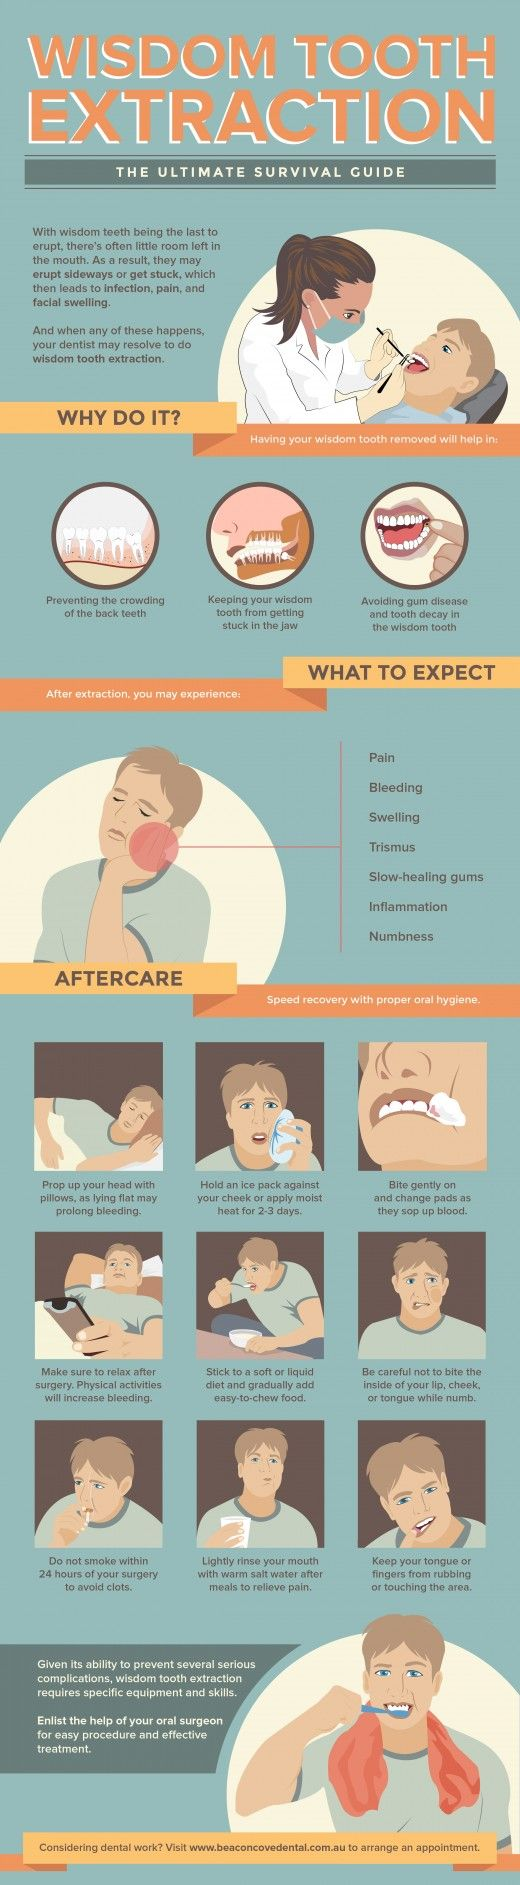 Handy guide to wisdom tooth extraction, although I wish I'd never ever have to survive it in the first place. :D